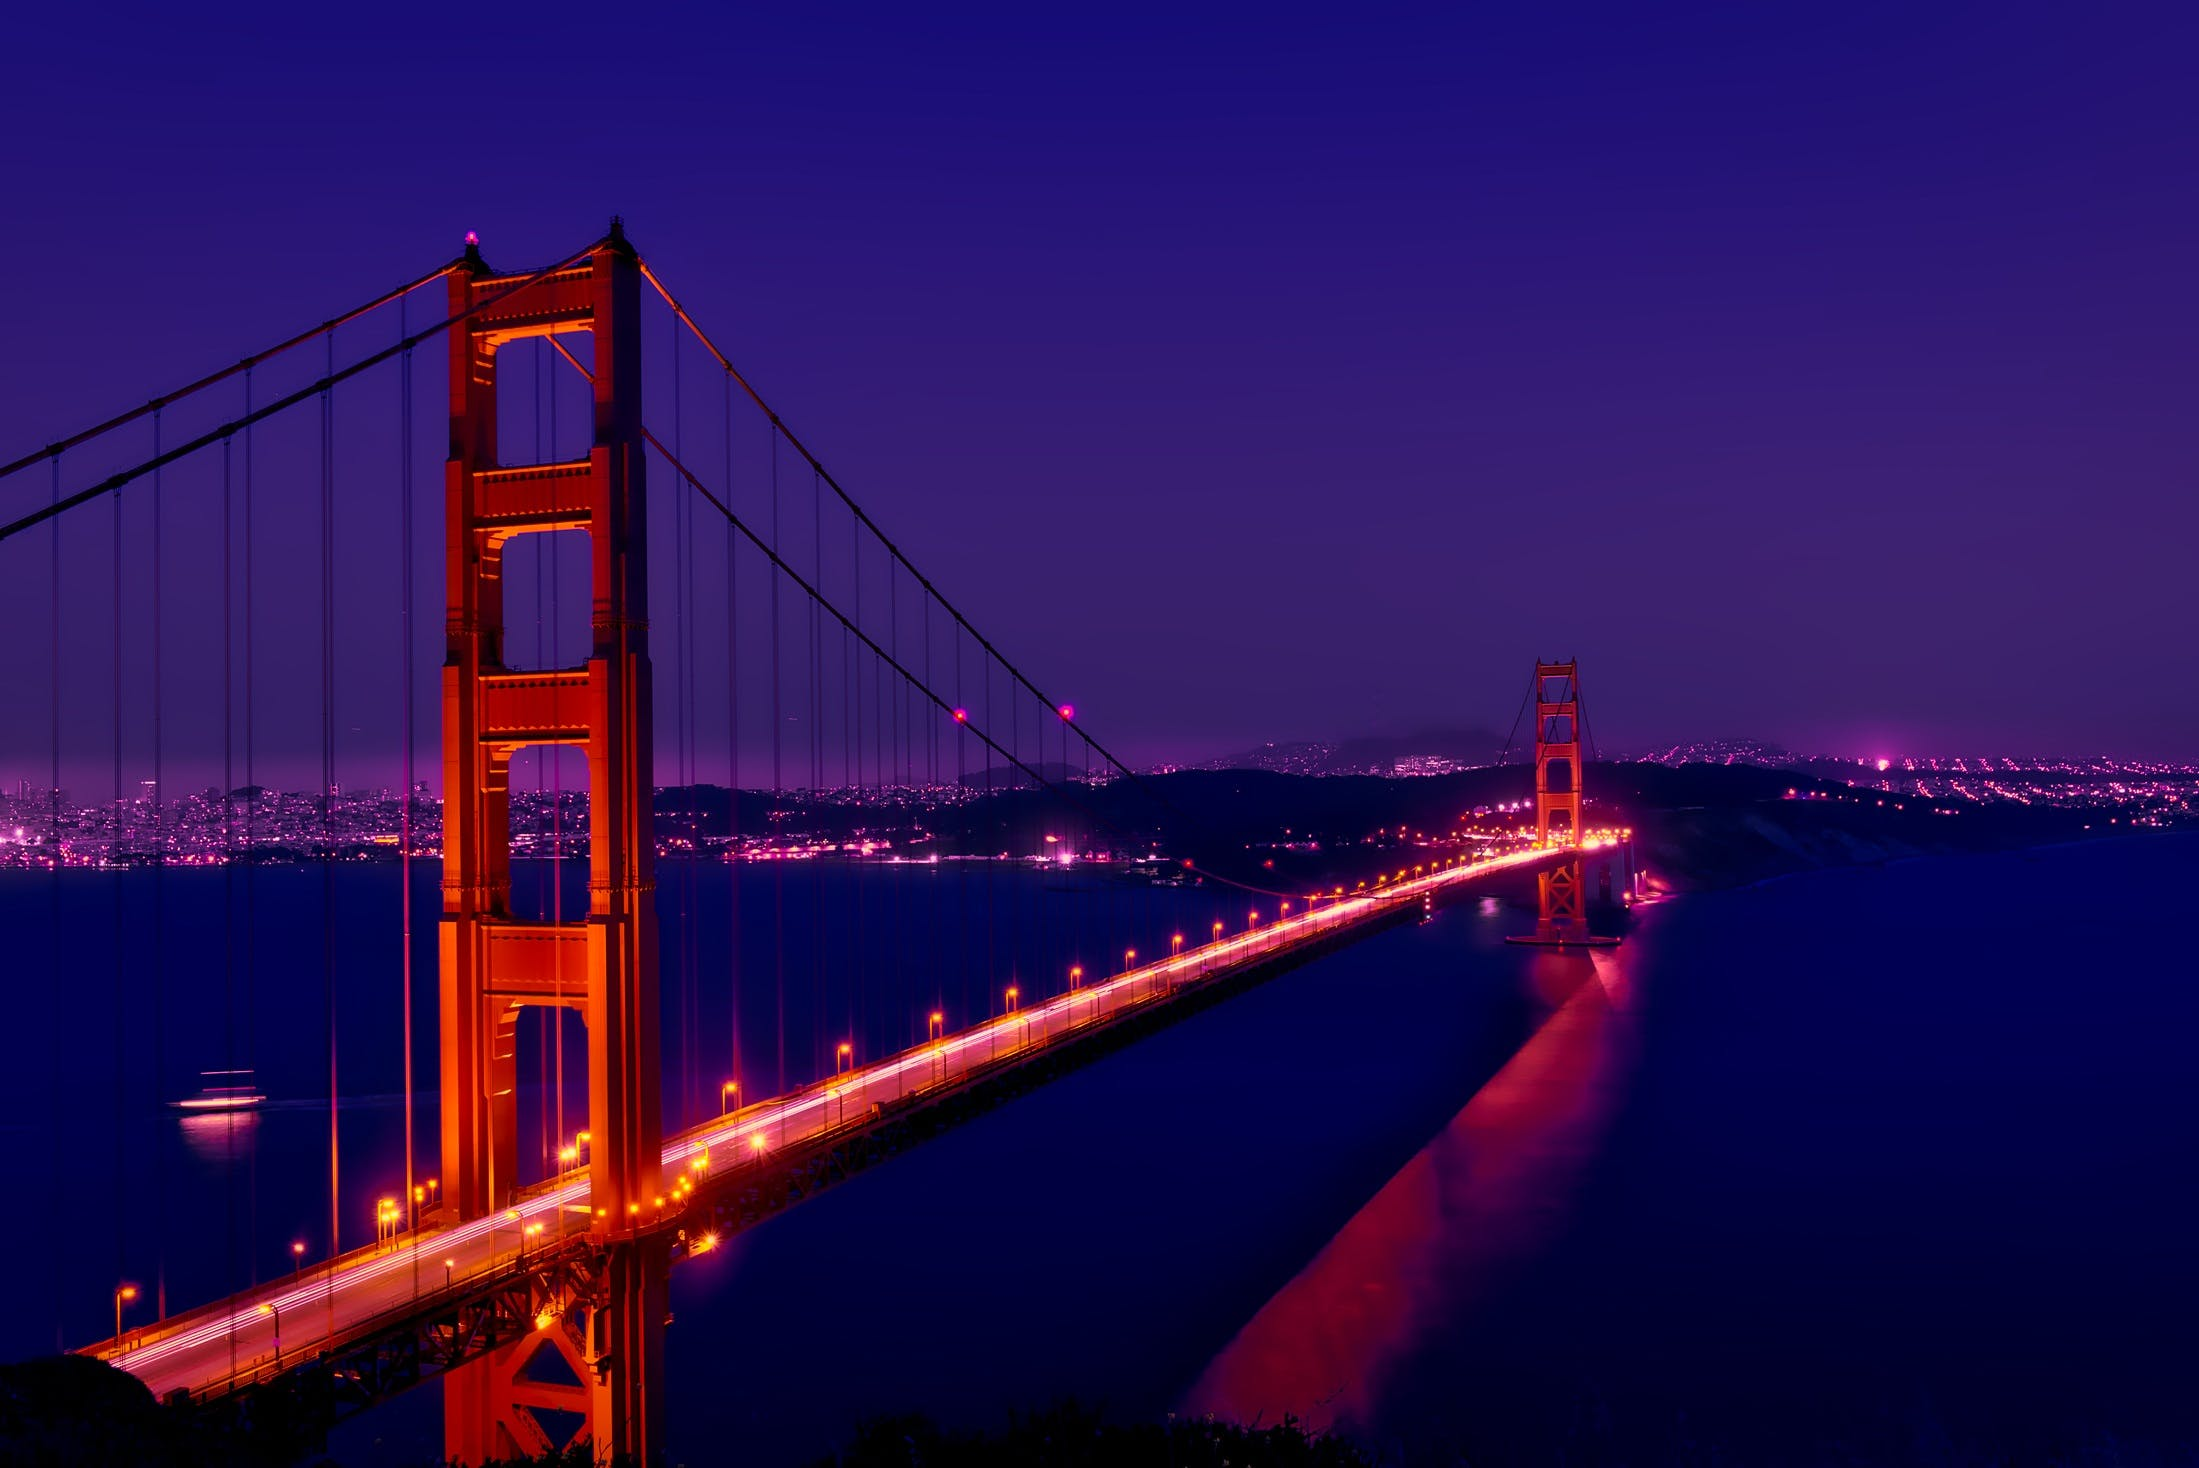 Architectural Photography of Golden Gate Bridge, San Francisco Usa during Nighttime